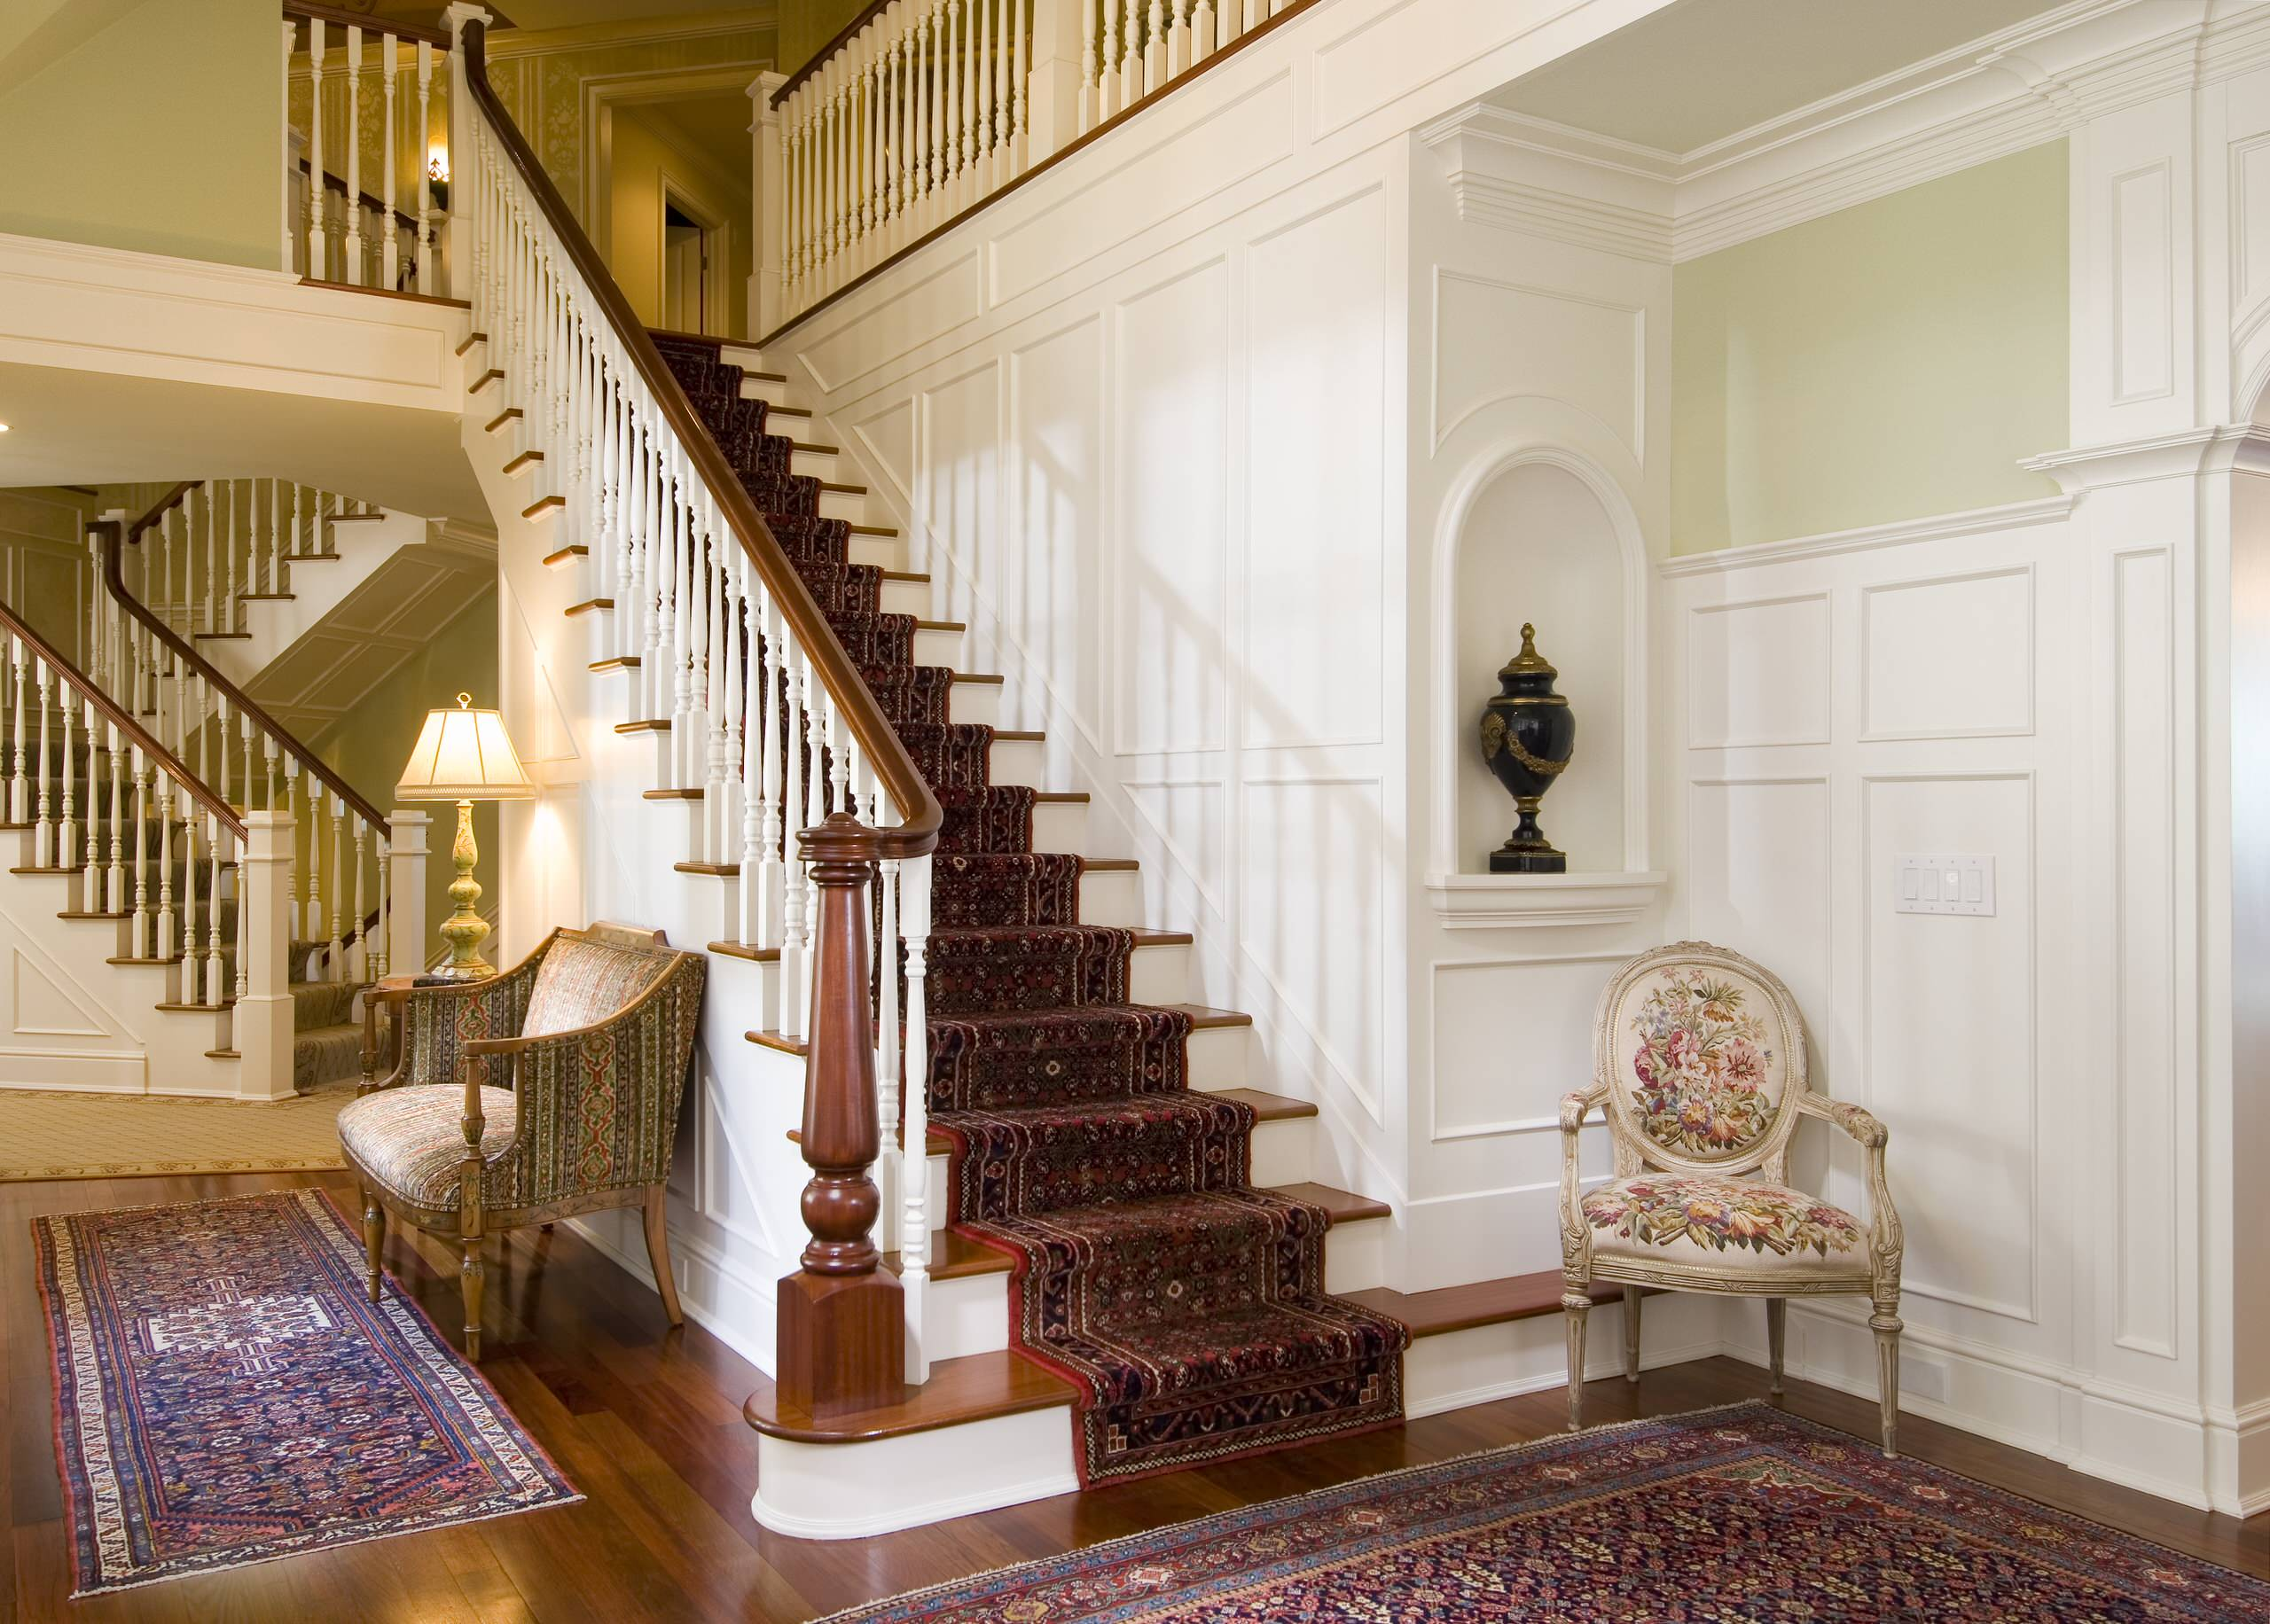 Inspiring Decorative Wall Panels with Visual Effect for Your Home: Traditional Staircase Plus Stair Carpet And Dark Stained Wood In Modern Home With Decorative Wall Panels And Hardwood Flooring Plus Persian Rug Also Railing With Spindle And Wainscot